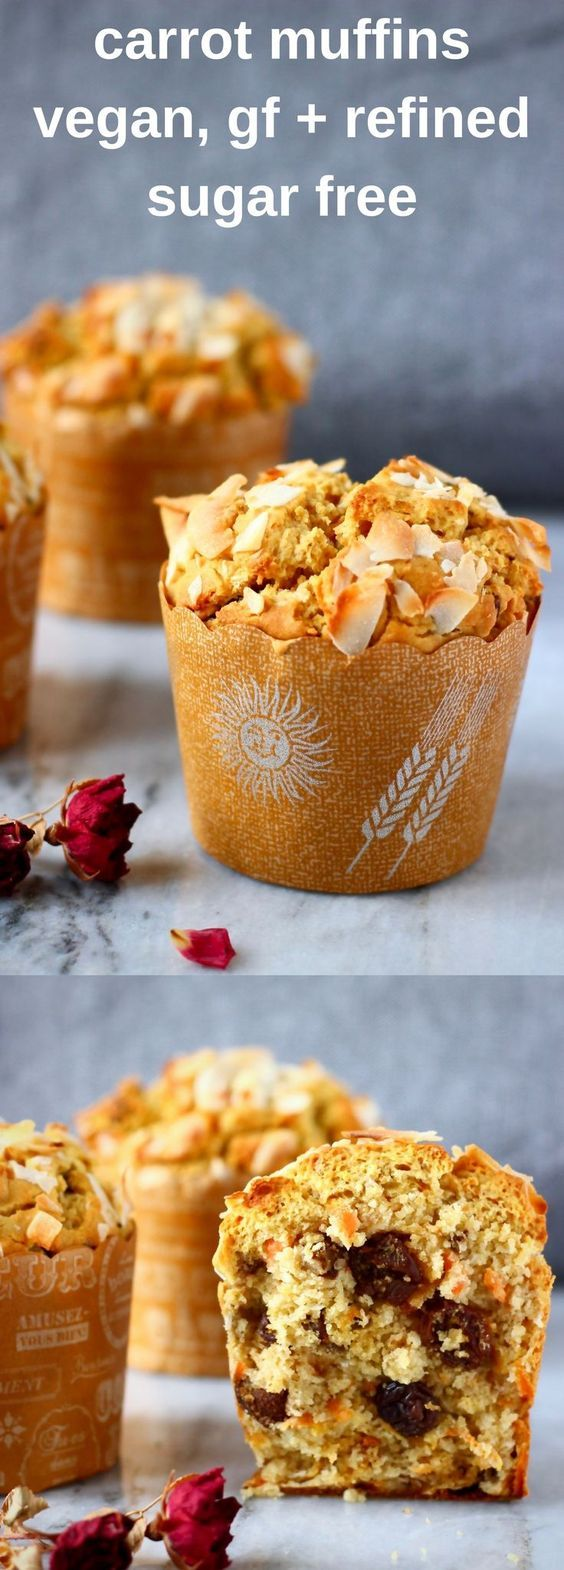 These Gluten-Free Vegan Carrot Muffins are moist and fluffy, fragrant and fruity, and perfect for a healthy breakfast! Refined sugar free.